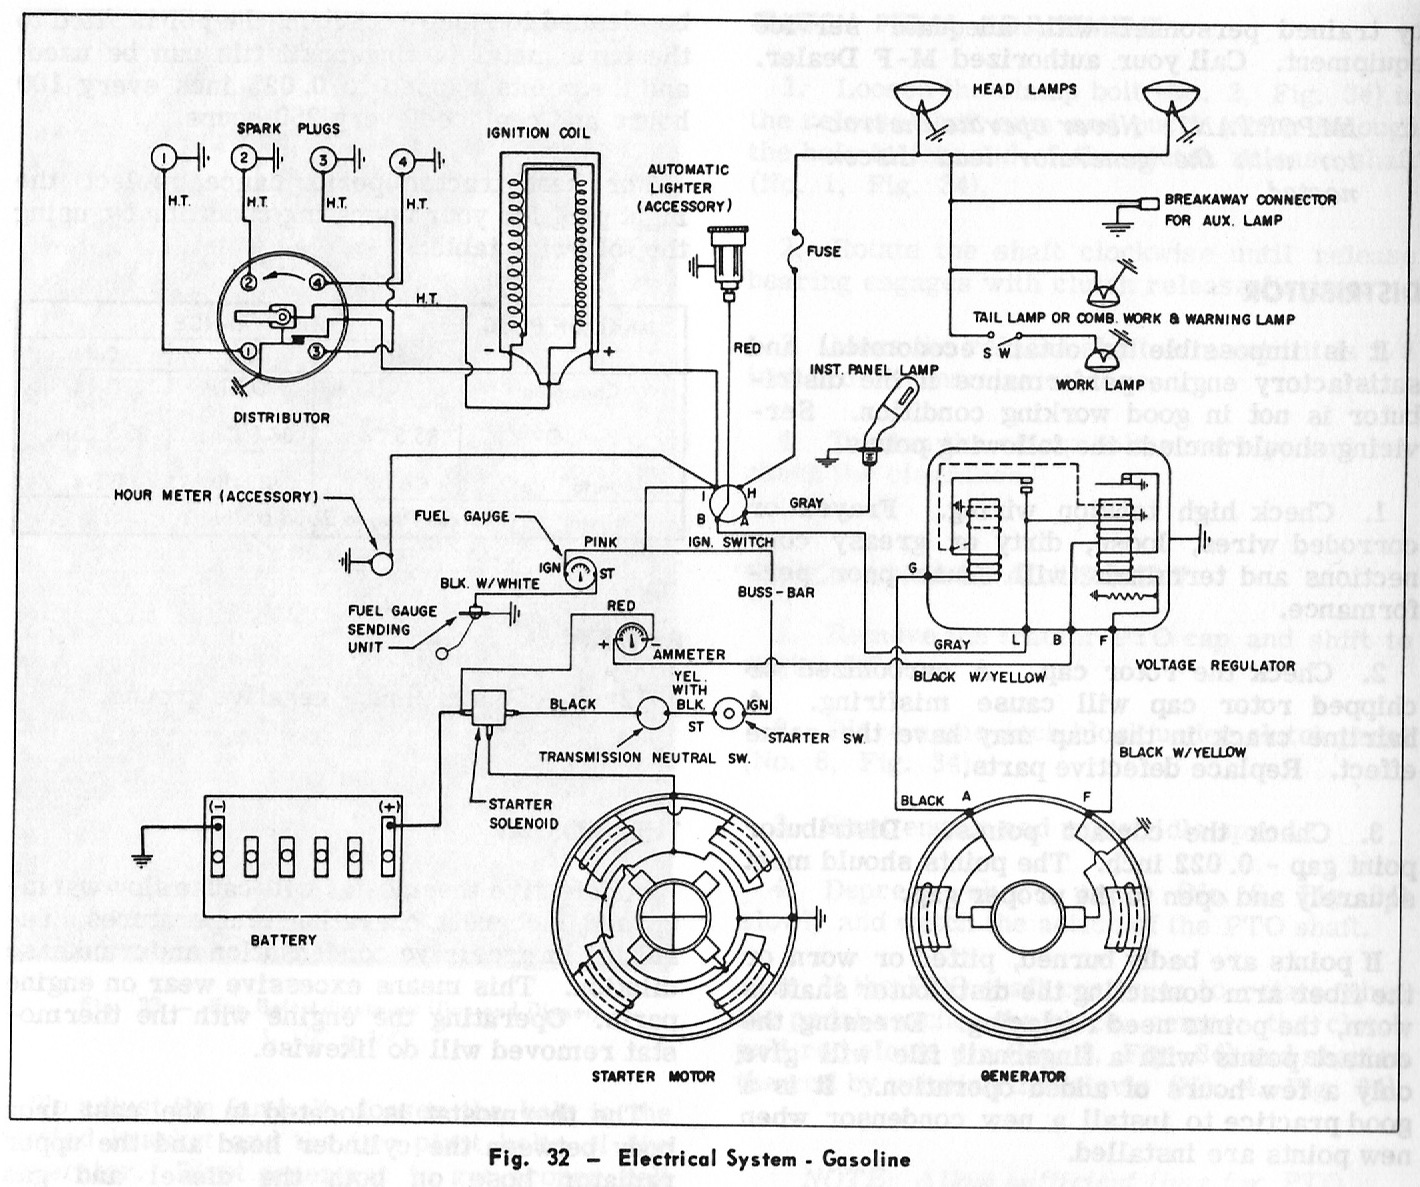 medium resolution of mf65 wiring diagram wiring diagram z1 massey ferguson 135 tractor wiring diagram mf 65 wiring diagram